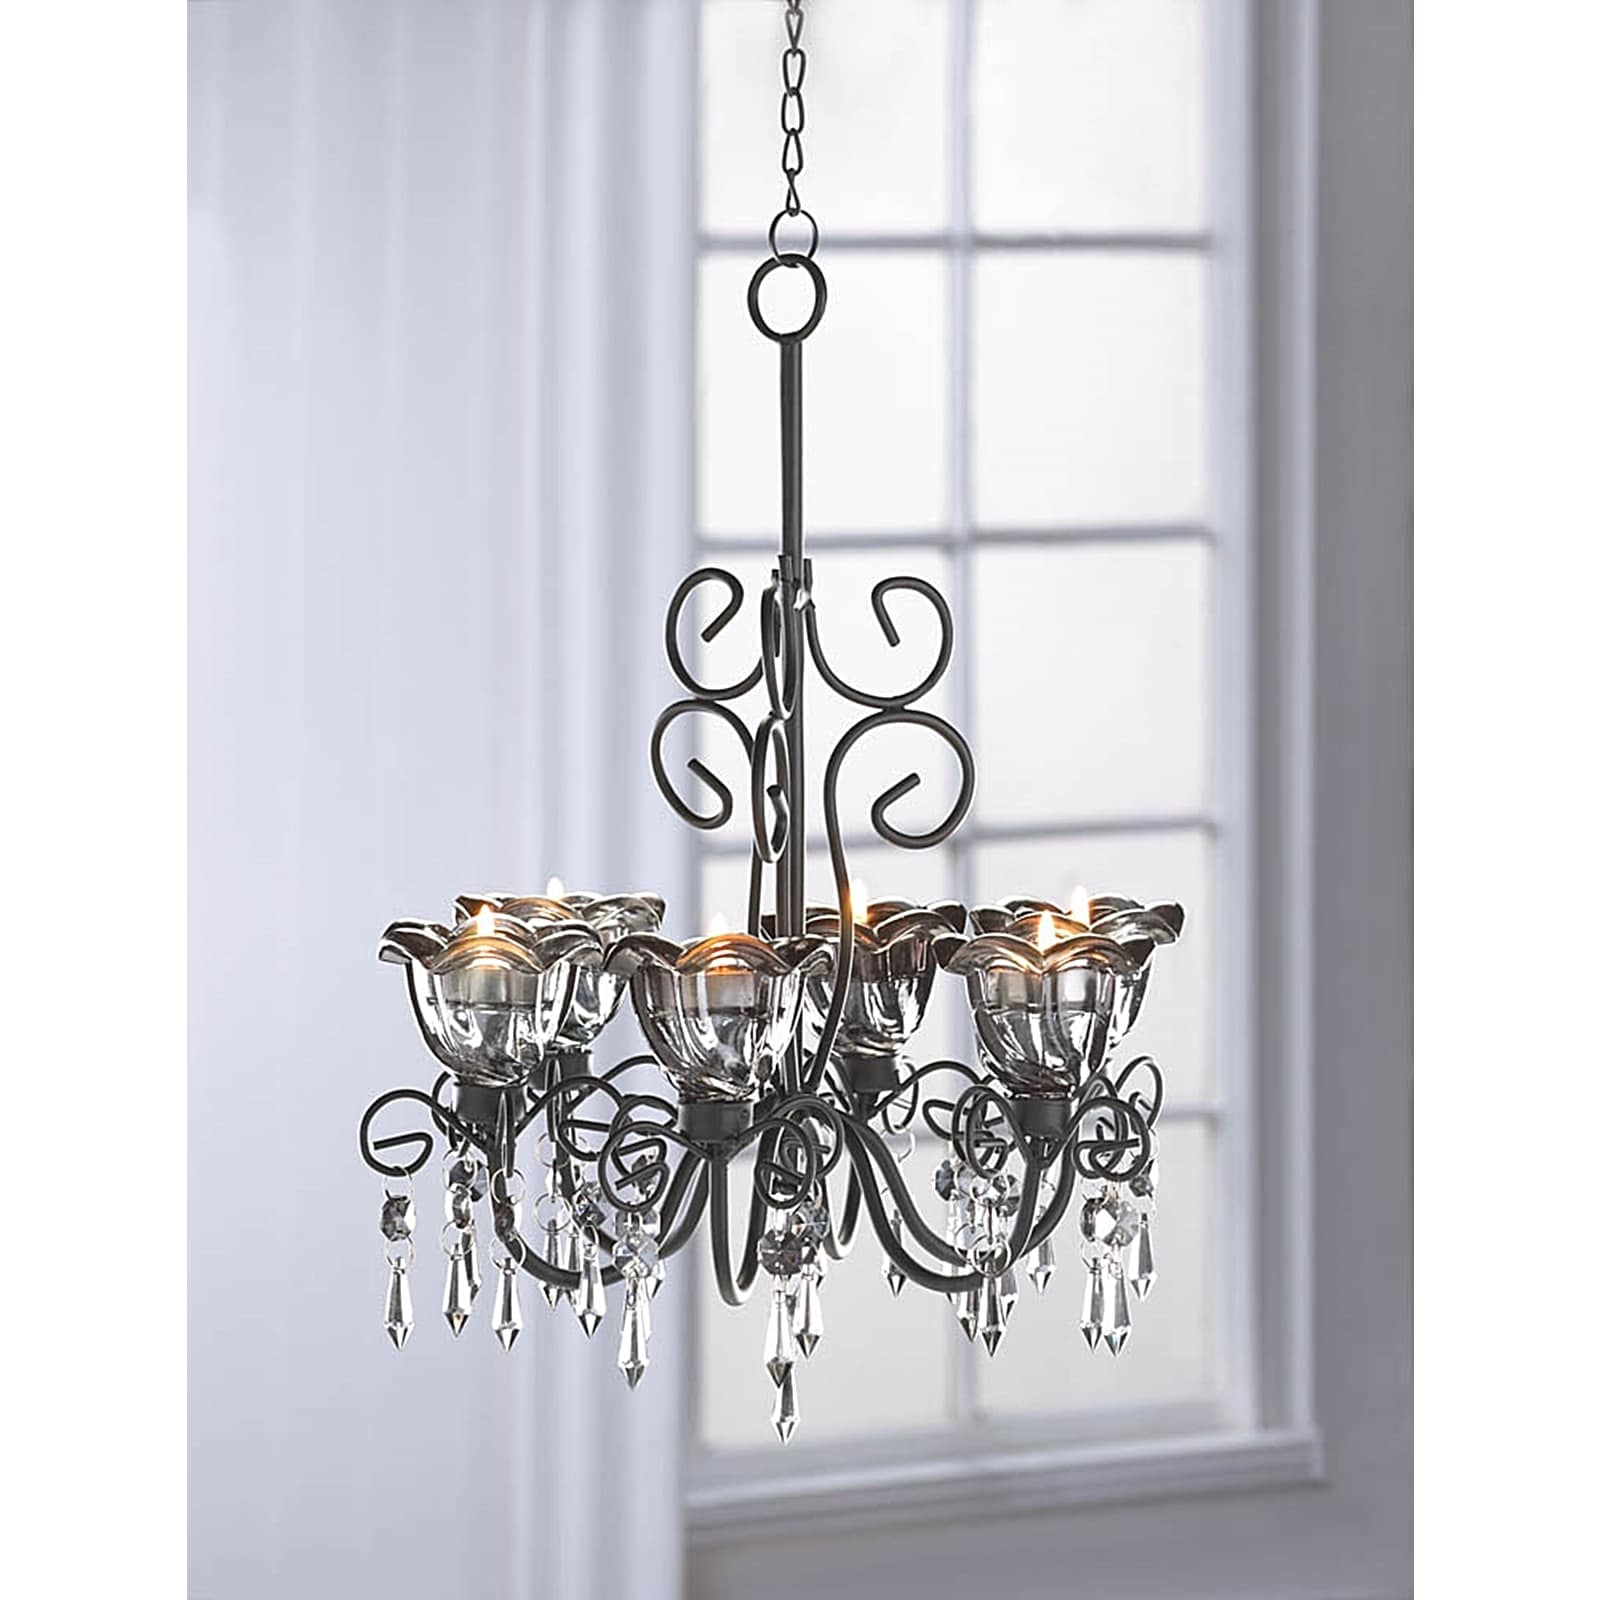 Black 6-Candle Crystal and Candle Hanging Chandelier (Bla...